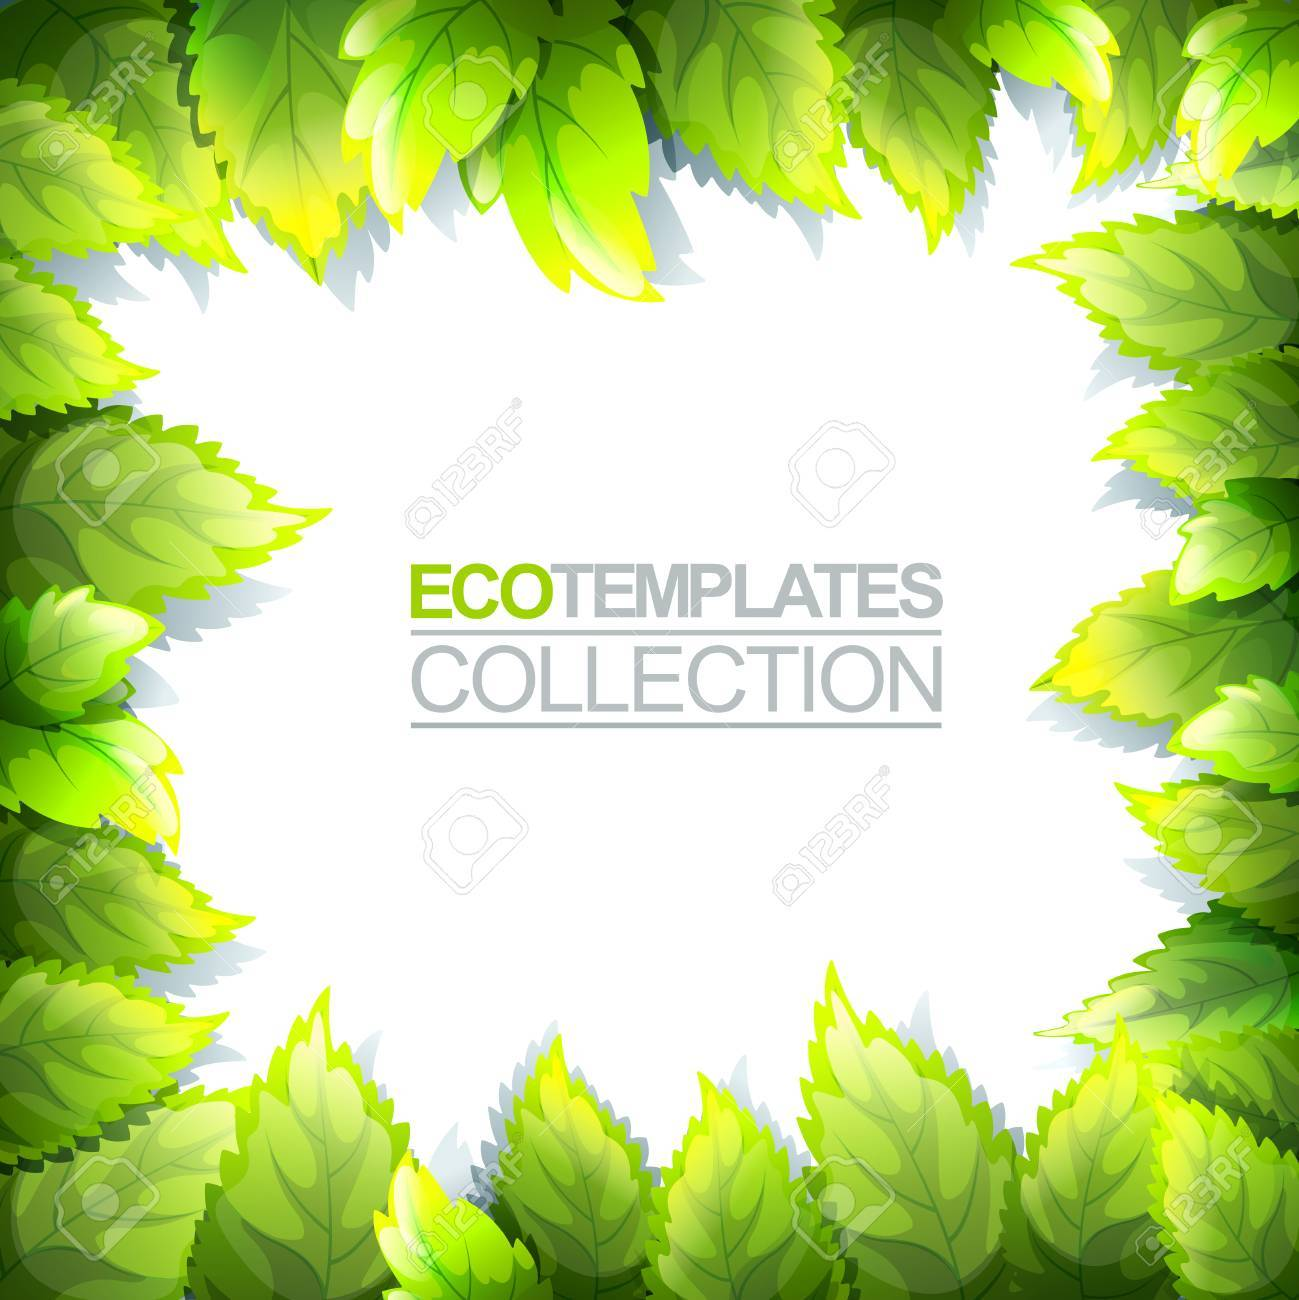 Green Bright Editable Template For Eco, Natural, Spring And Fresh ...